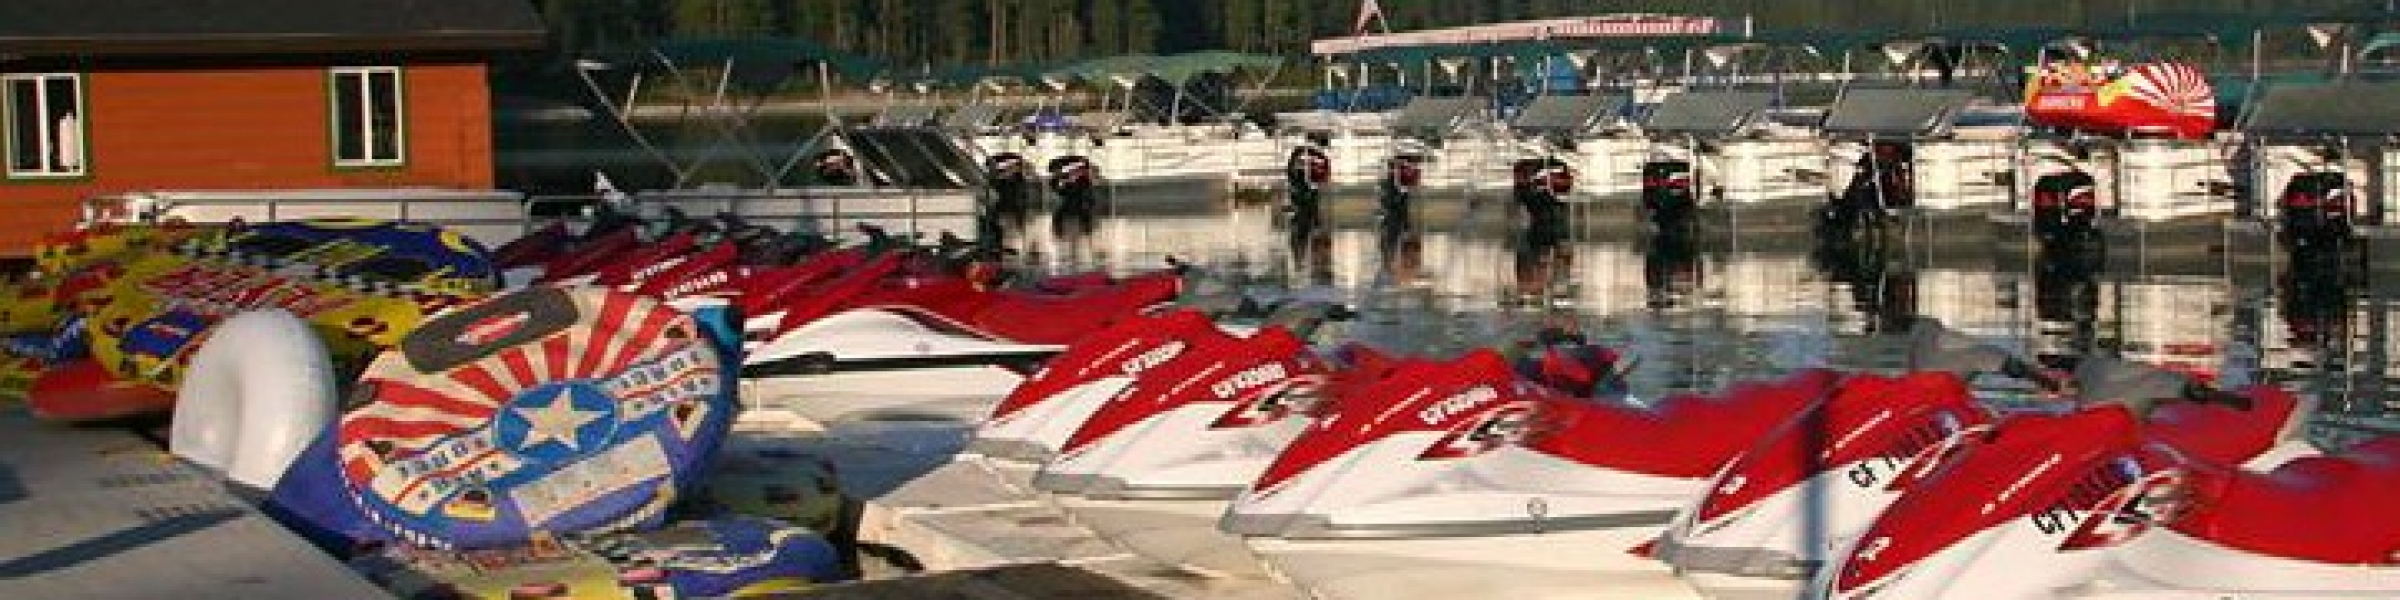 bass-lake-boat-rentals-slideshow-006